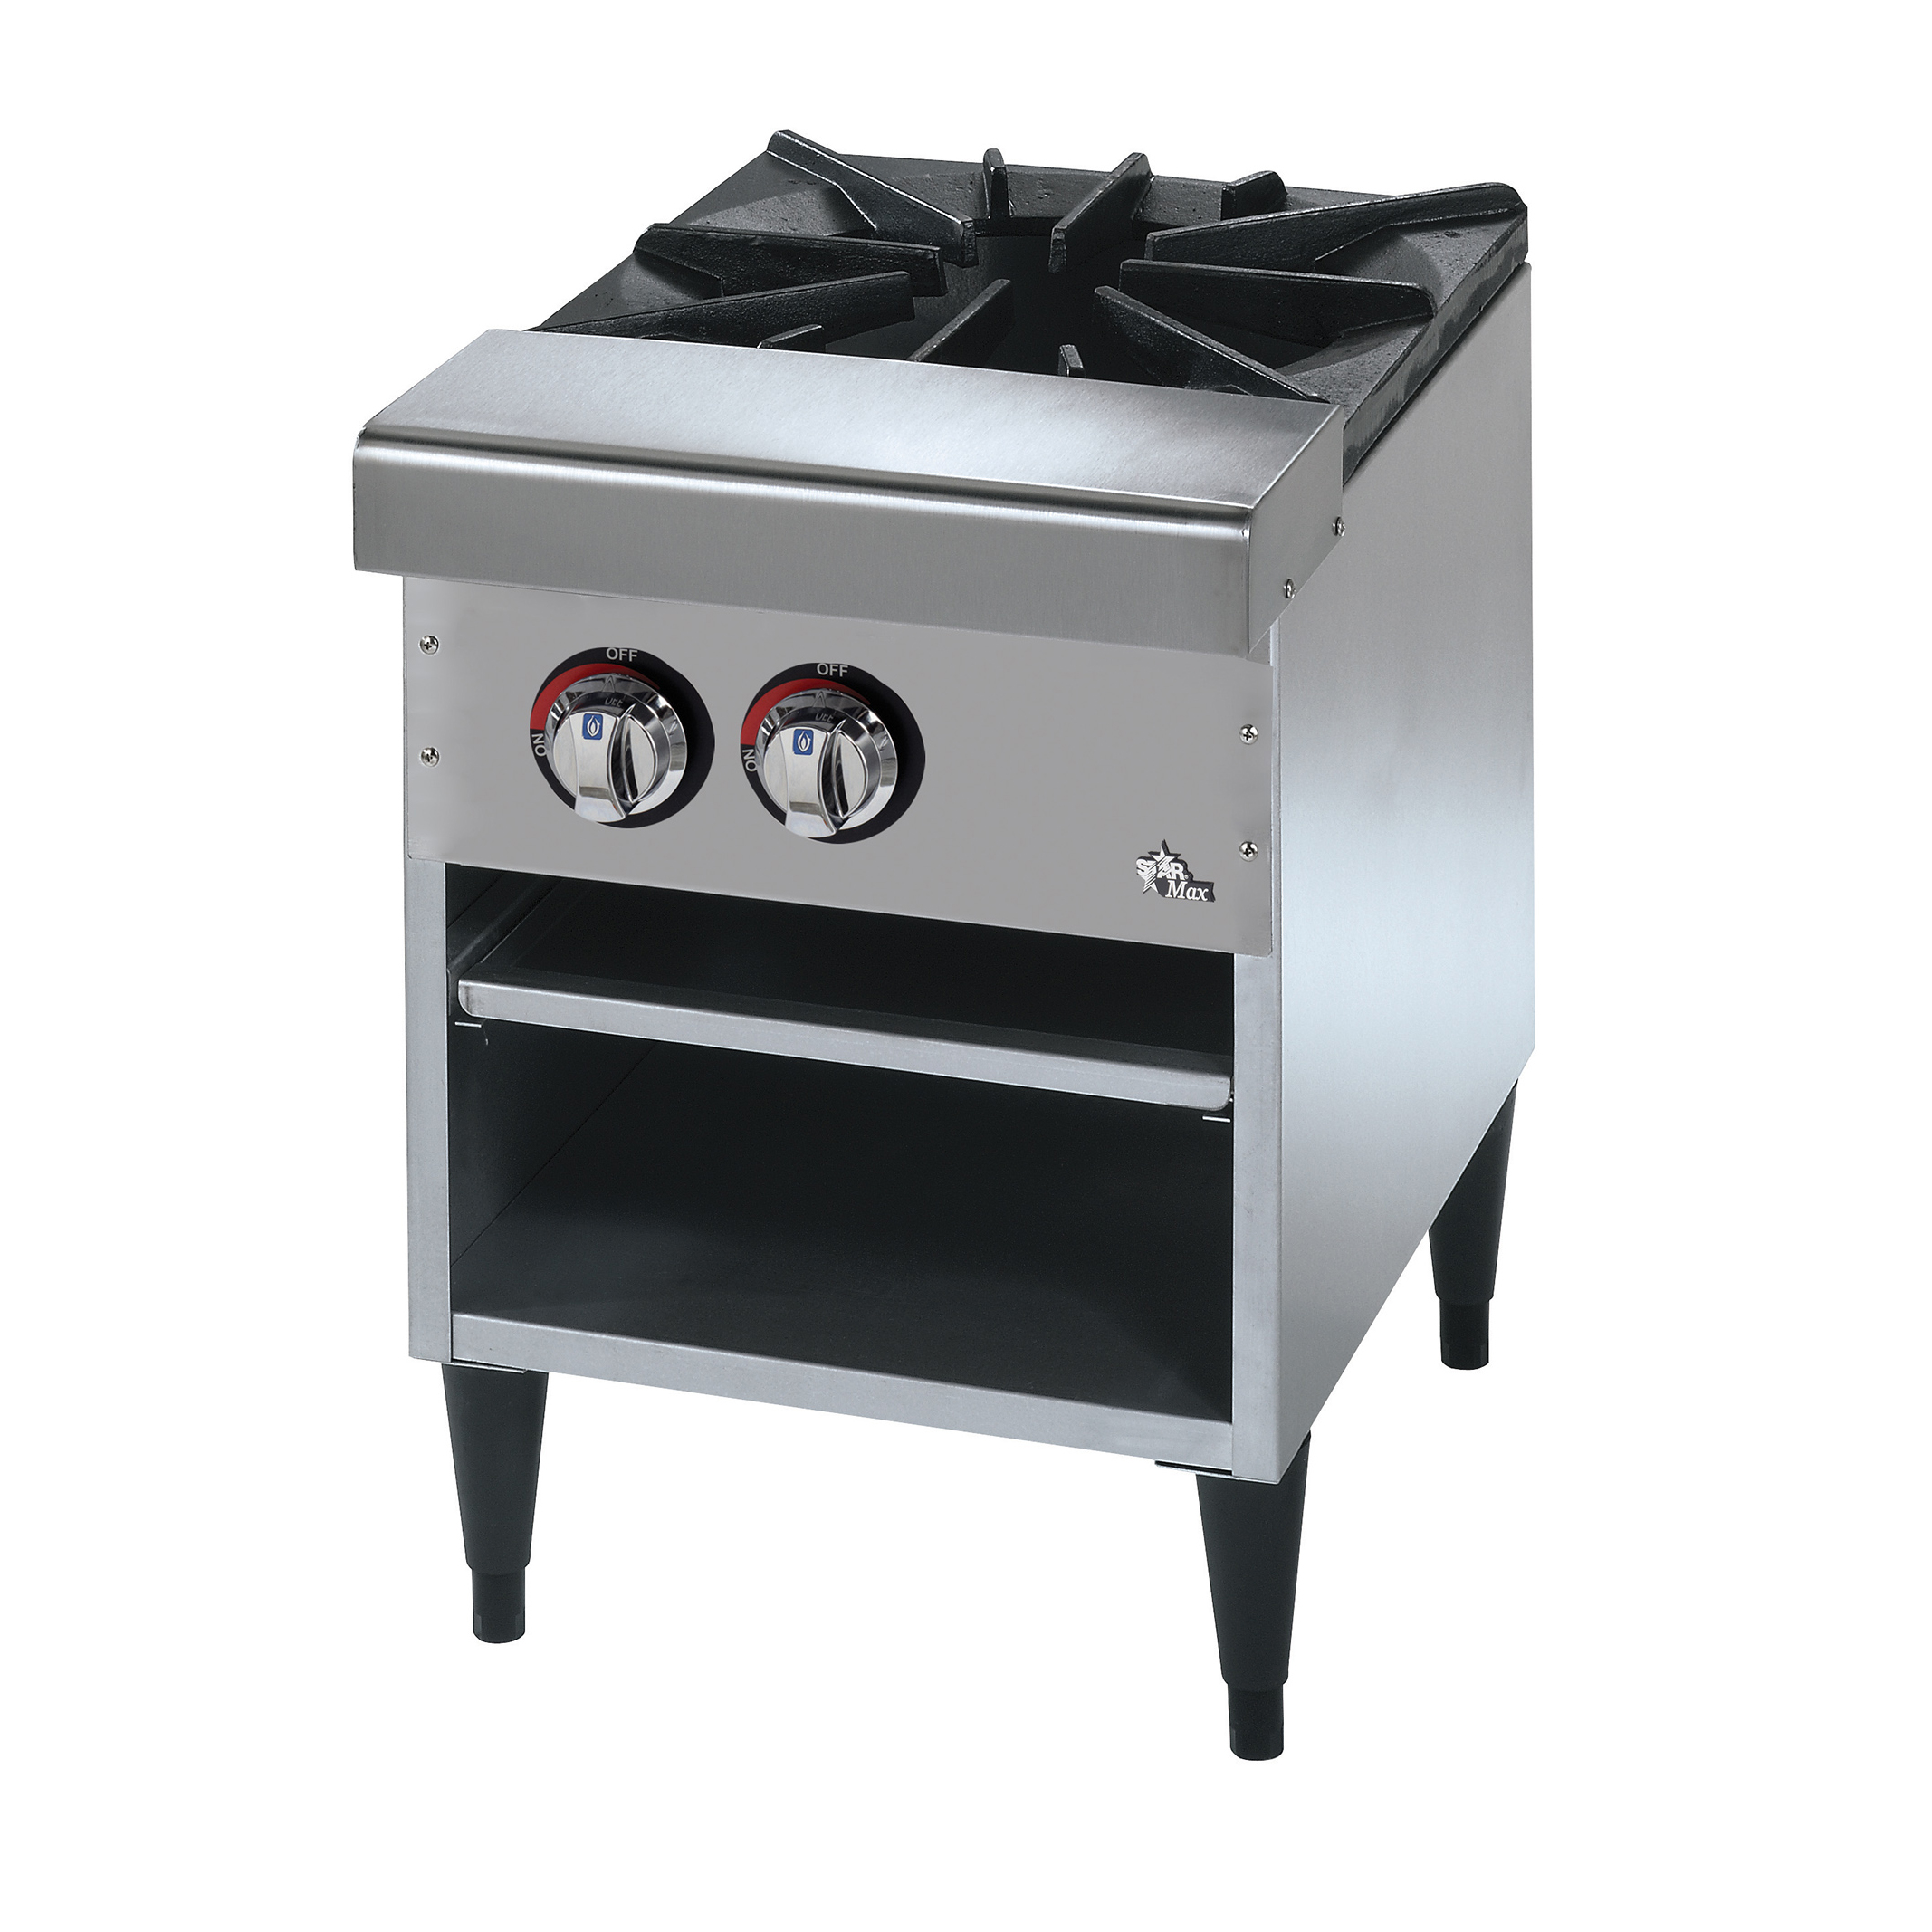 Star 601SPRF range, stock pot, gas